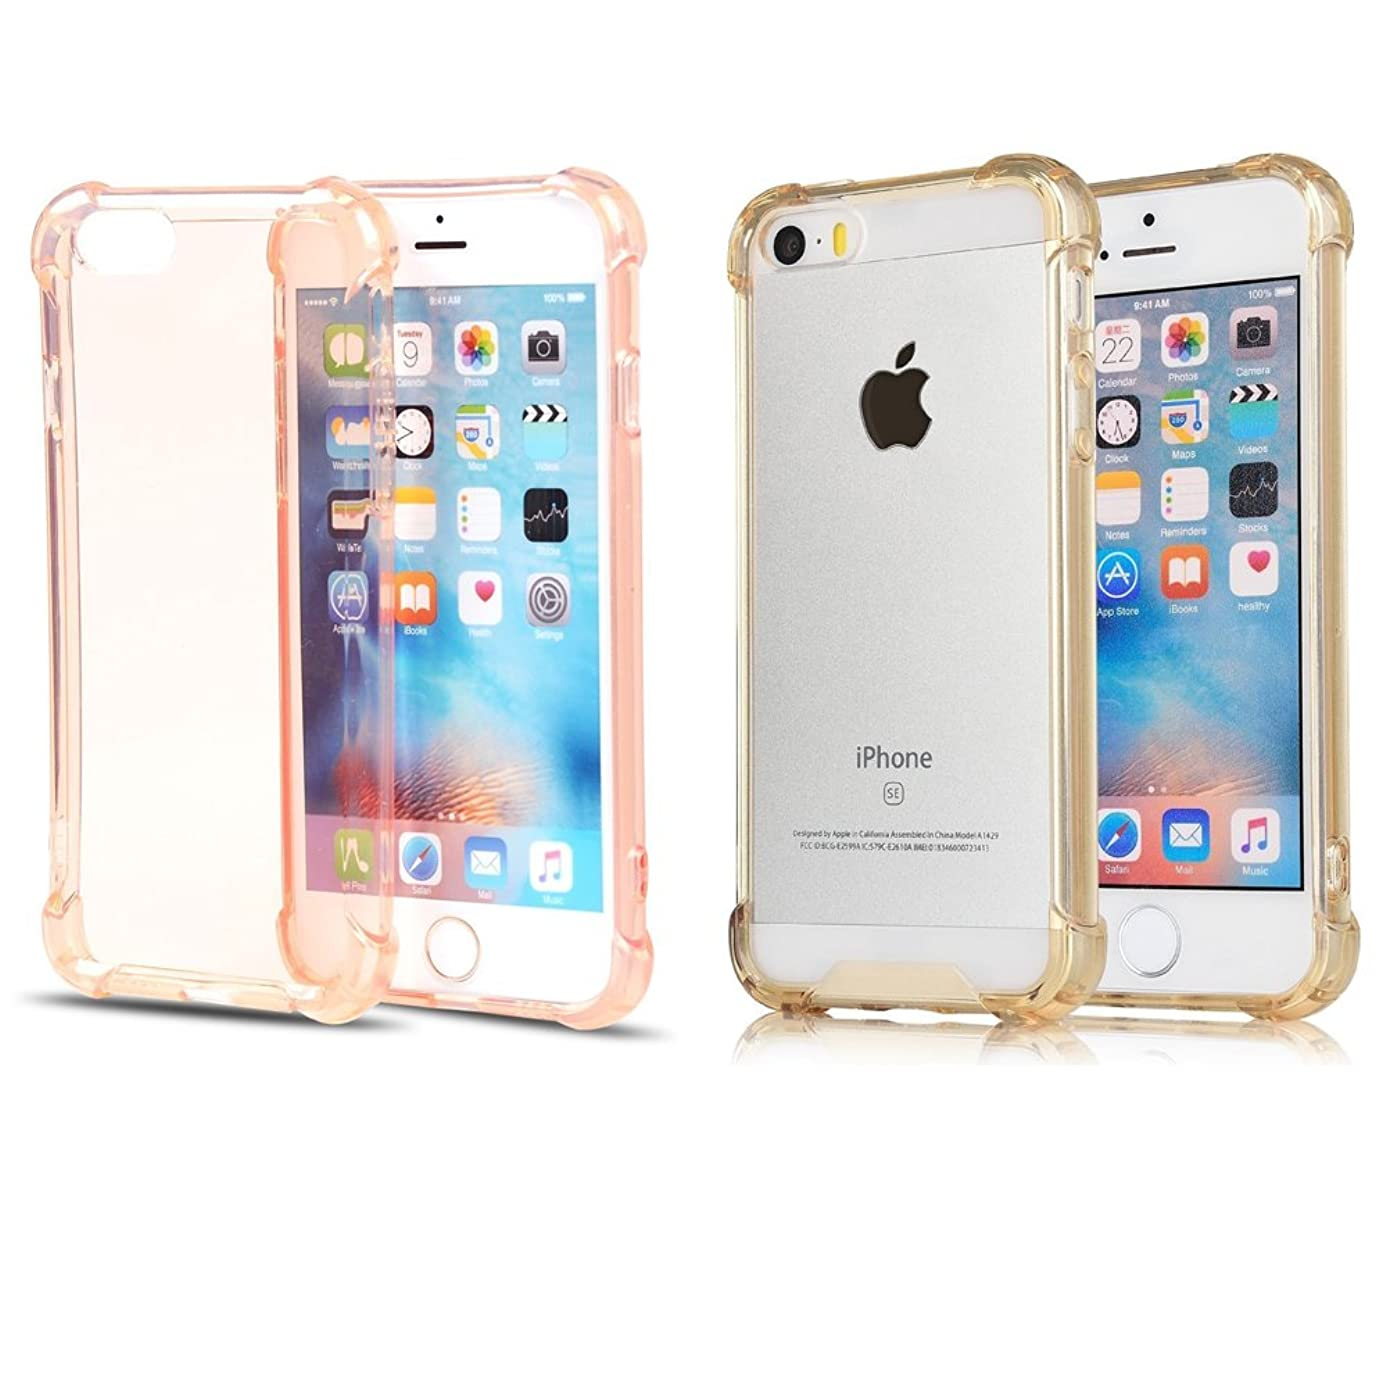 iPhone 6S Plus Case iPhone 6 Plus Case, [2 Pack]CaseHQ Transparent Clear Enhanced Grip Protective Defender cover Soft TPU Shell Shock-Absorption Bumper Anti-Scratch Clear Back Air Cushioned 4 Corners